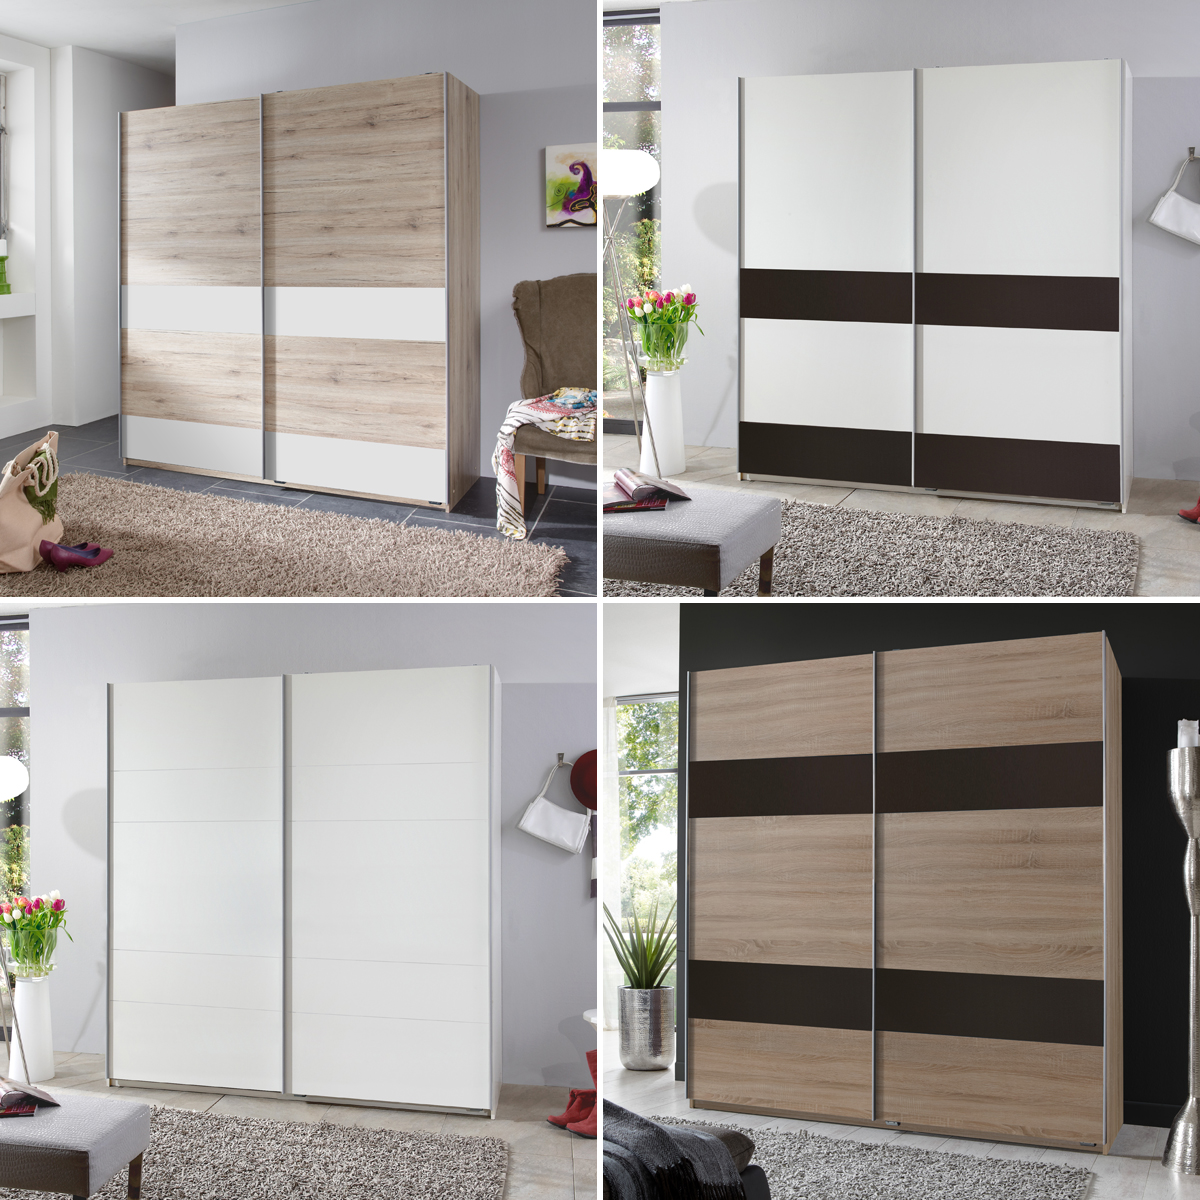 wohnwand 180 cm breit wandboard arena sonoma eiche wei. Black Bedroom Furniture Sets. Home Design Ideas